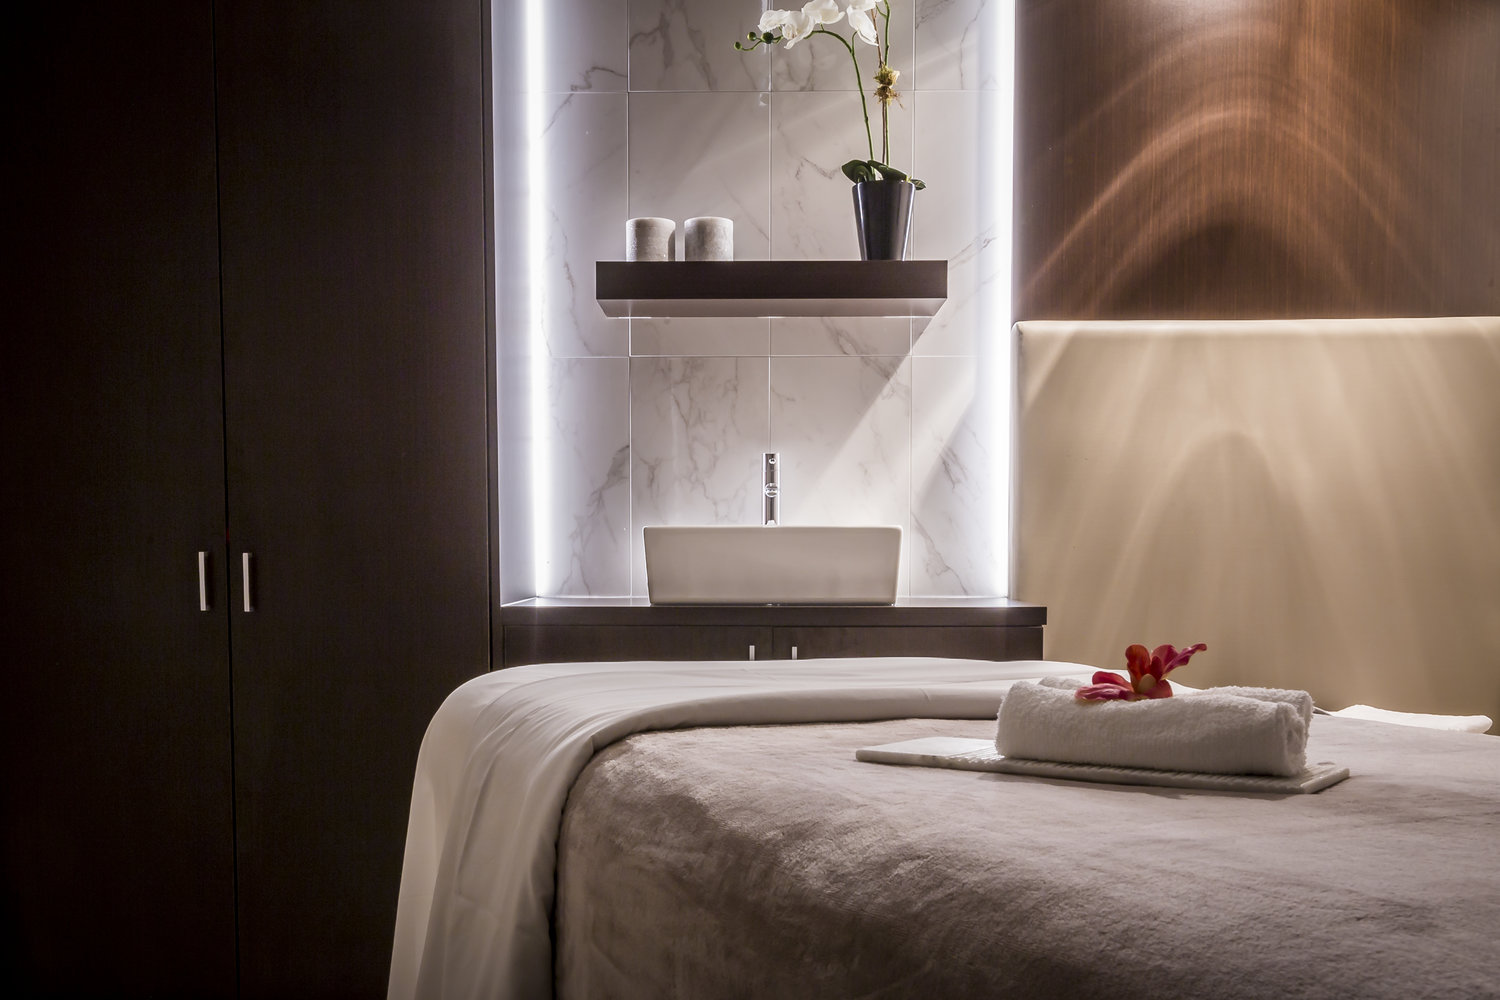 Spa+St.+James+at+Ritz-Carlton+Montreal,+treatment+room,+luxury+spa.png